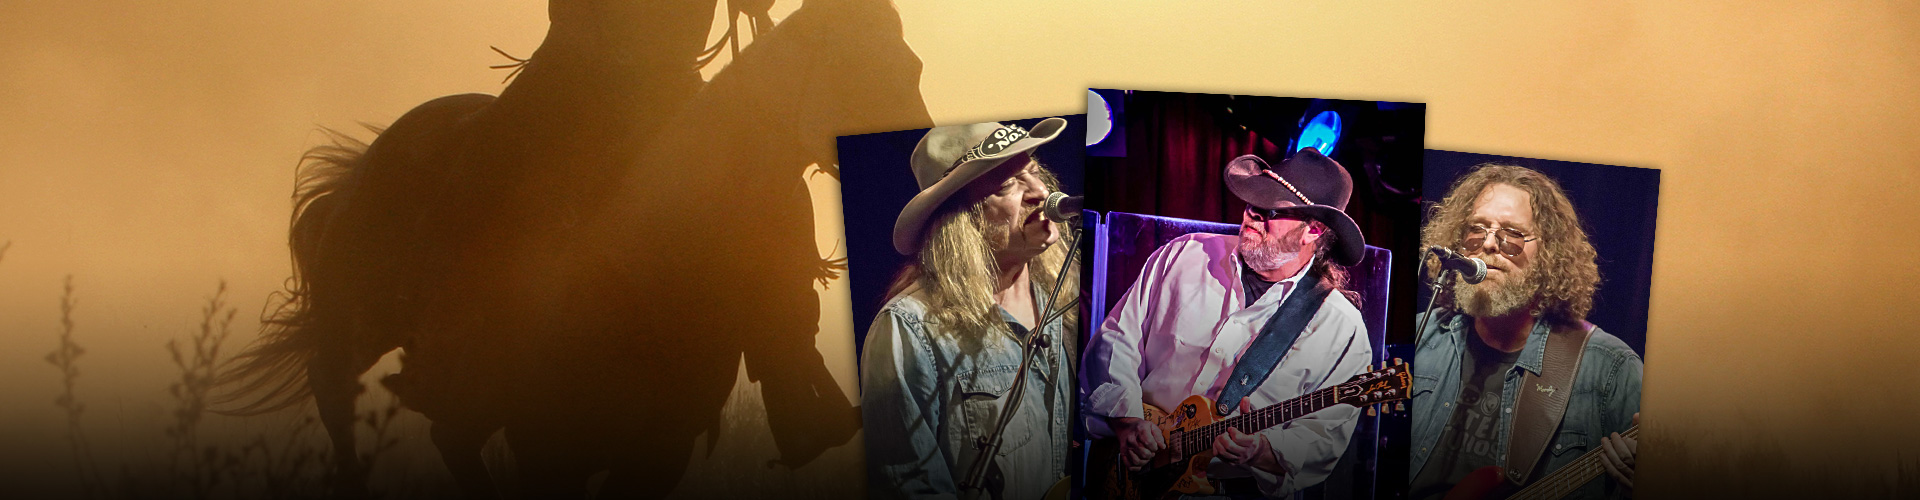 Tour | The Marshall Tucker Band